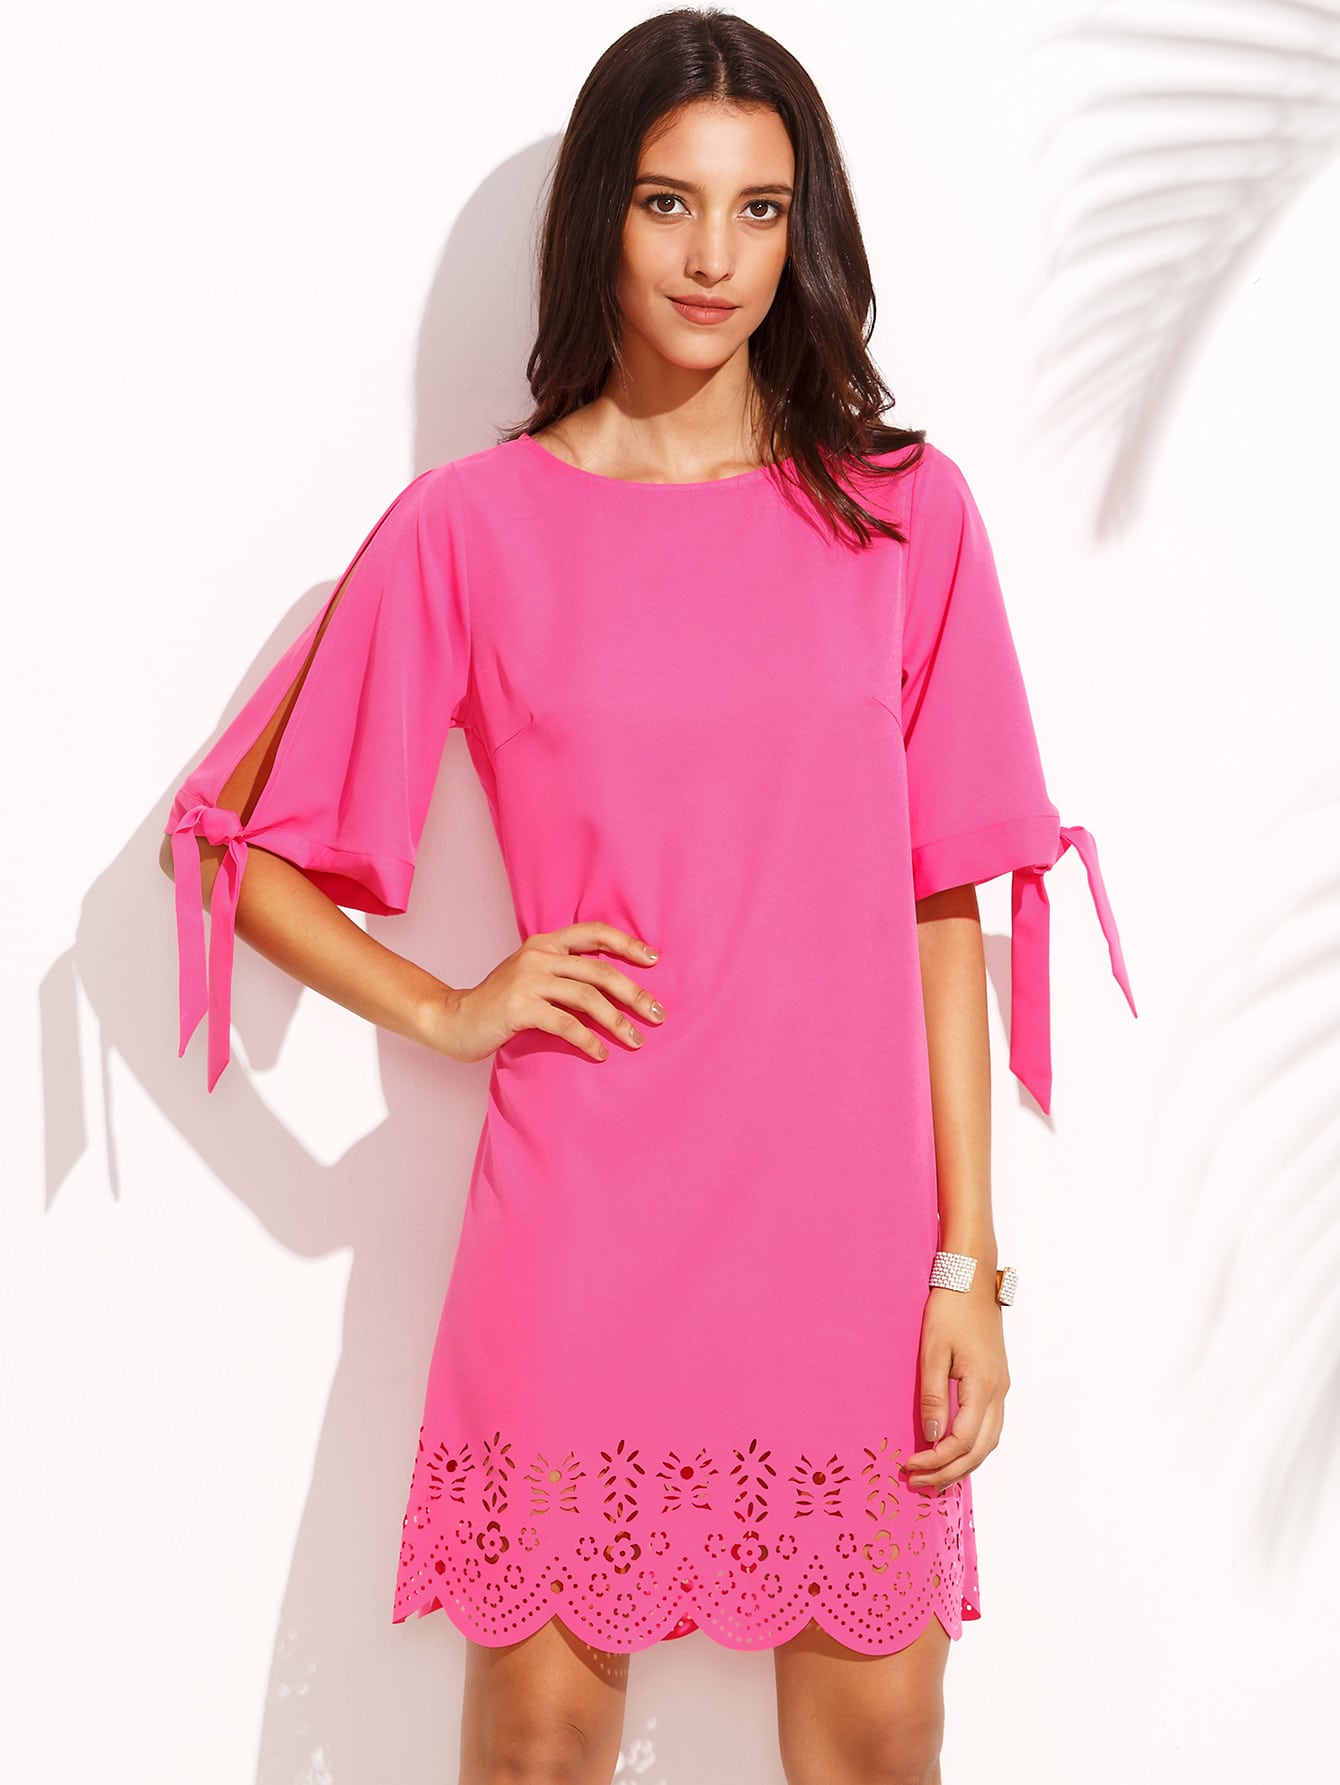 Hot Pink Tie Cuff Scallop Hem Shift Dress dress160729712